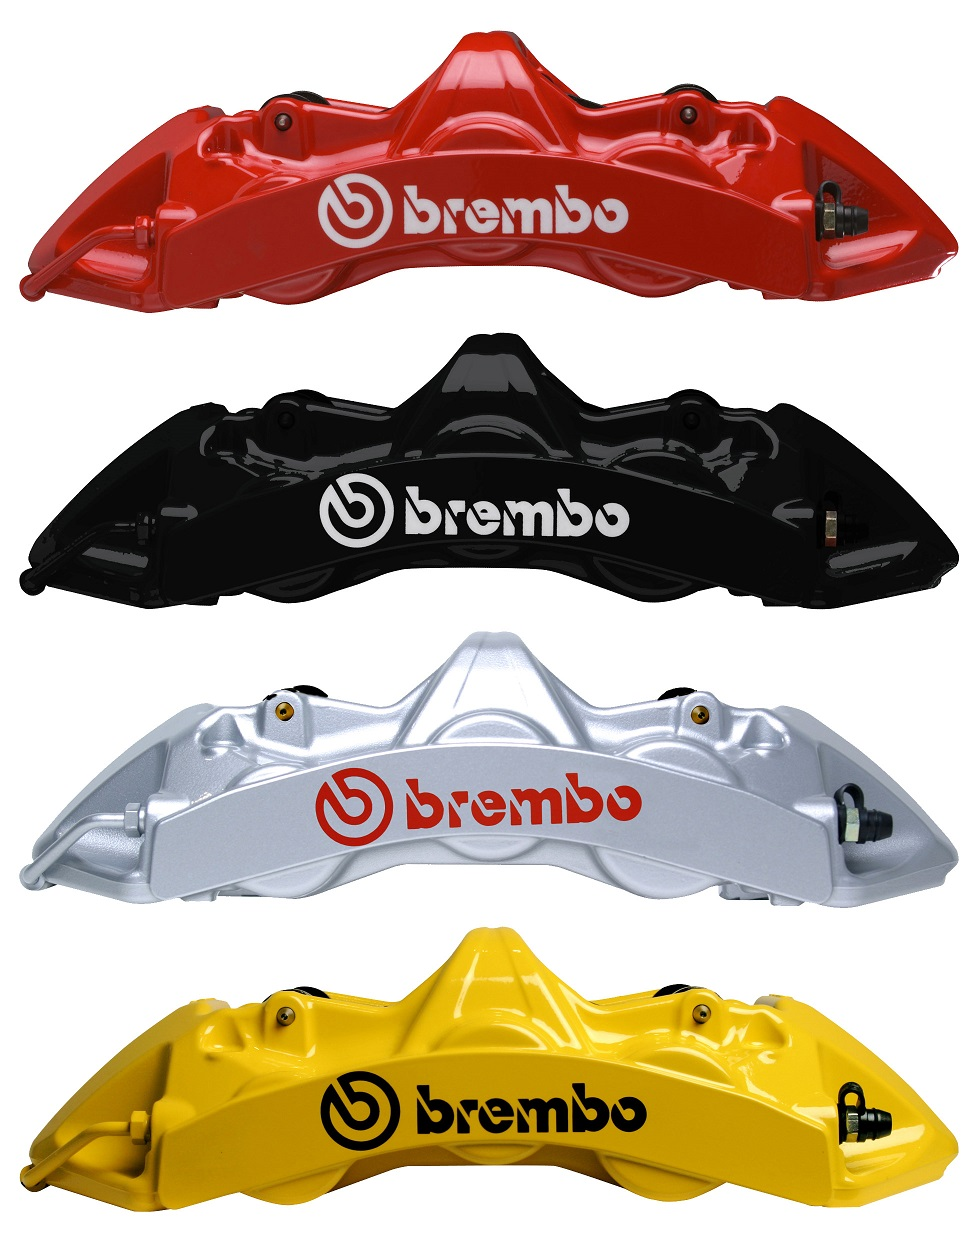 Brembo_ColorsForum.jpg